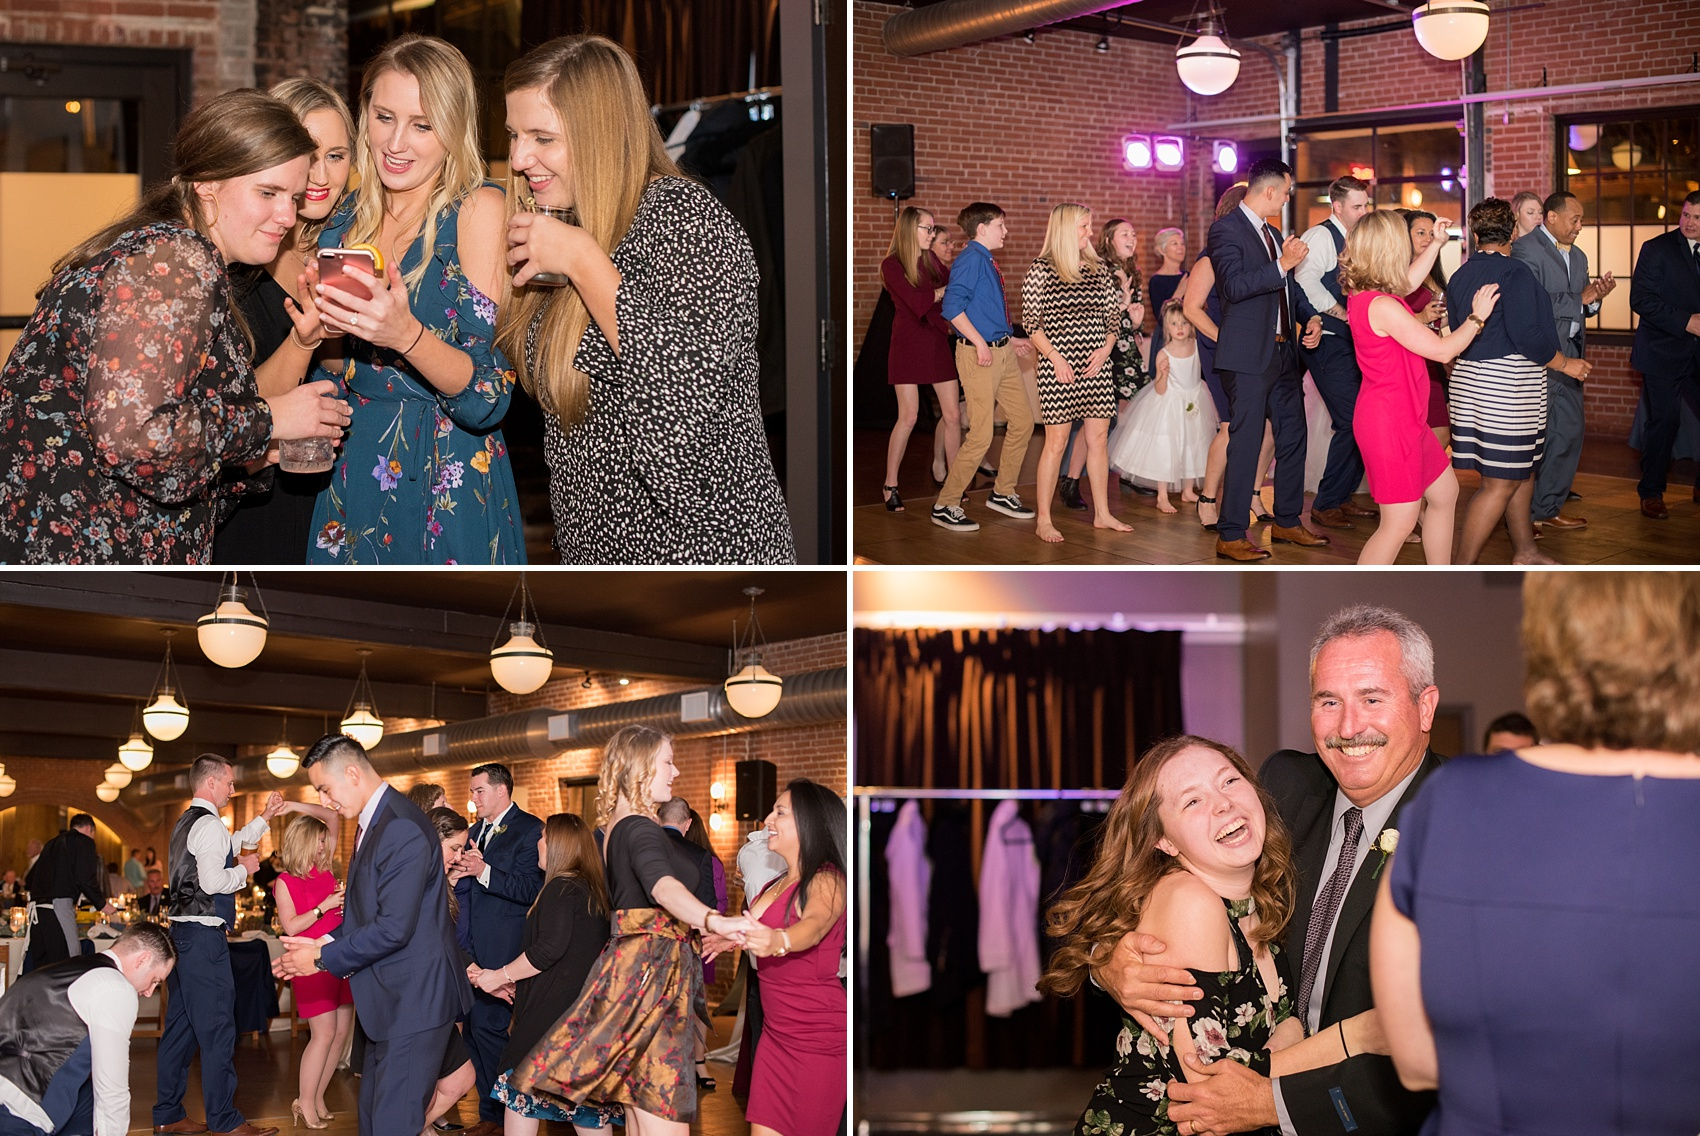 Durham wedding photos at The Cookery by Mikkel Paige Photography in North Carolina. The indoor reception had a DJ and a lot of dancing!